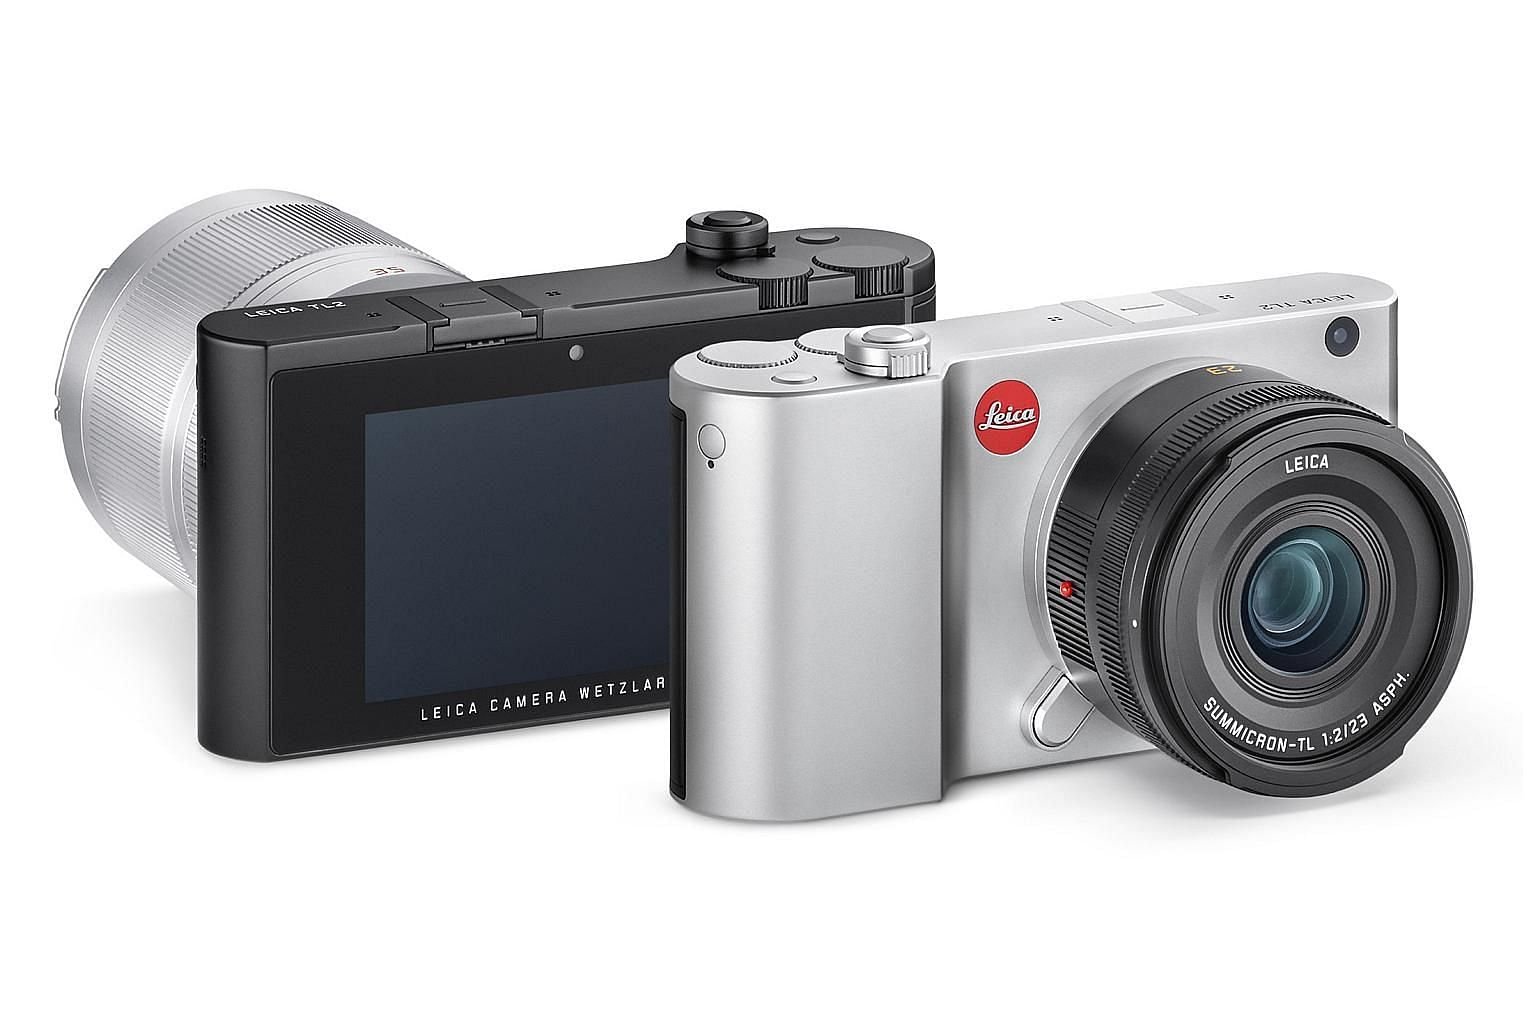 The Leica TL2 uses a 24.2-megapixel APS-C image sensor instead of the full-frame image sensor - found in the M10 and the SL - and lacks a built-in electronic viewfinder, but it still represents great value for money. Each TL2 camera body is made from